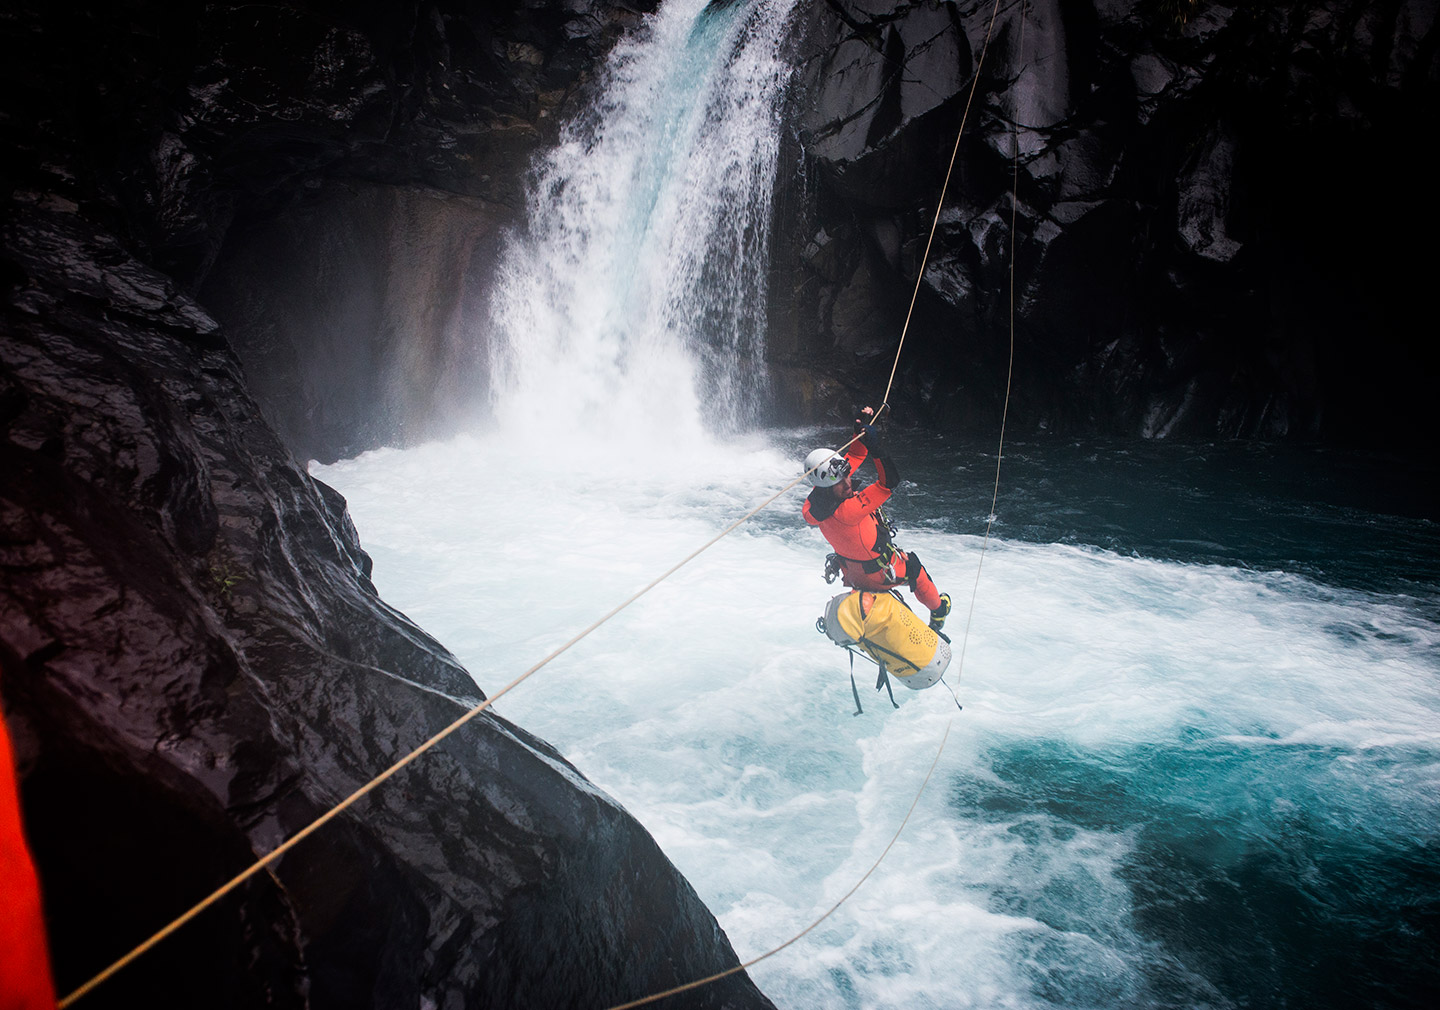 taiwan-canyoning-expedition-the-malishan-25